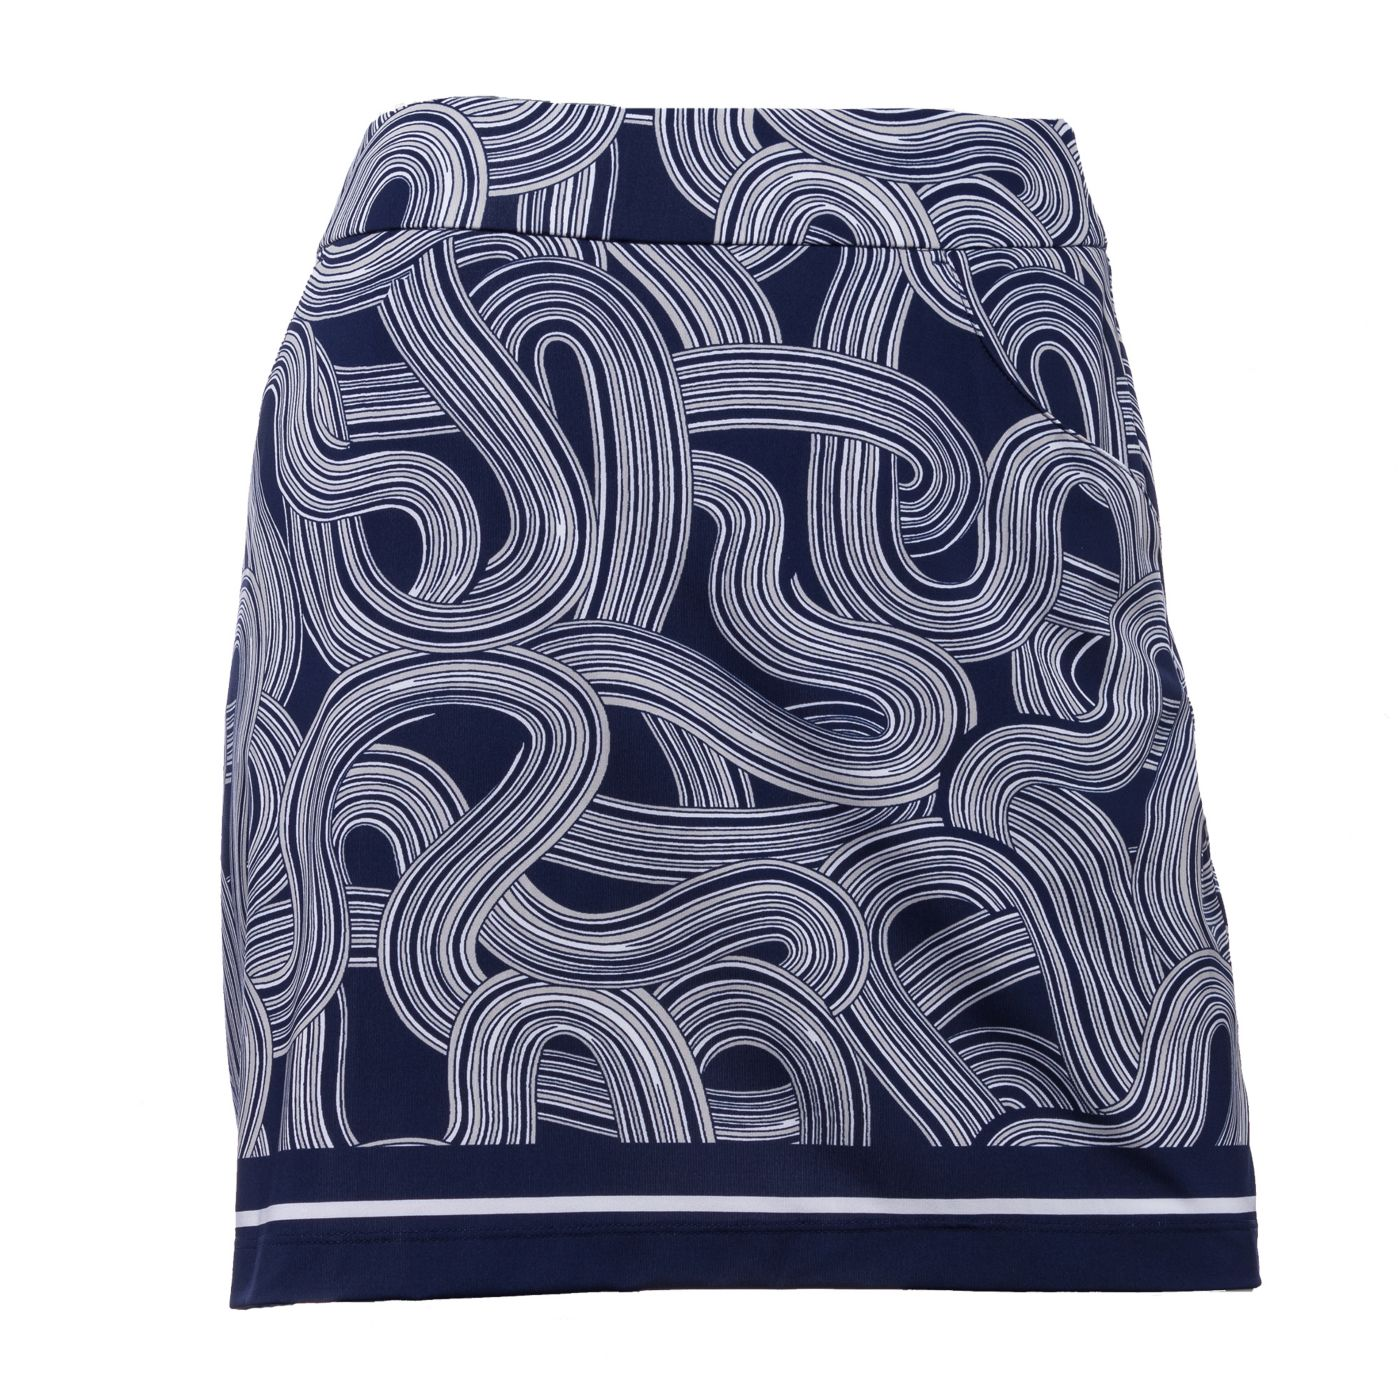 "EP Pro Women's 17.5"" Spiral Print Pull-On Golf Skort"